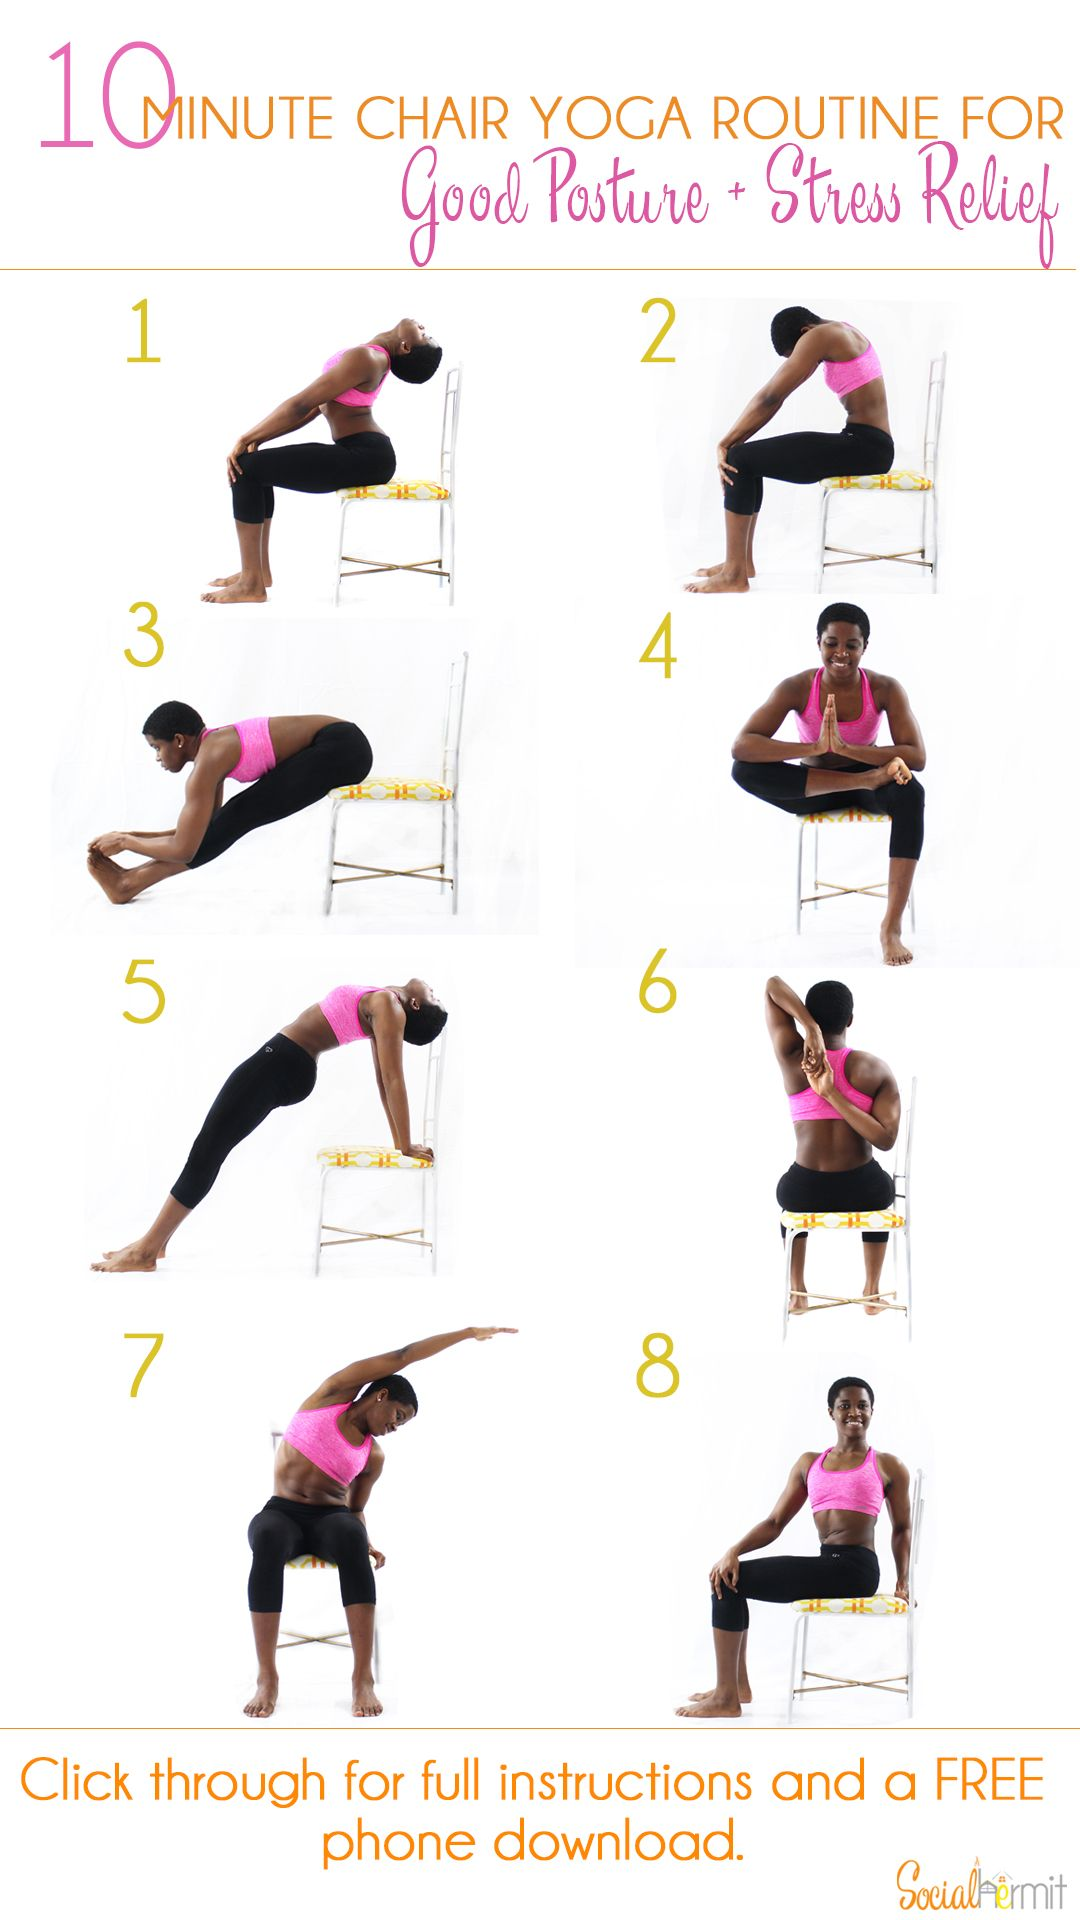 10 Minute Chair Yoga Routine for Good Posture and Stress